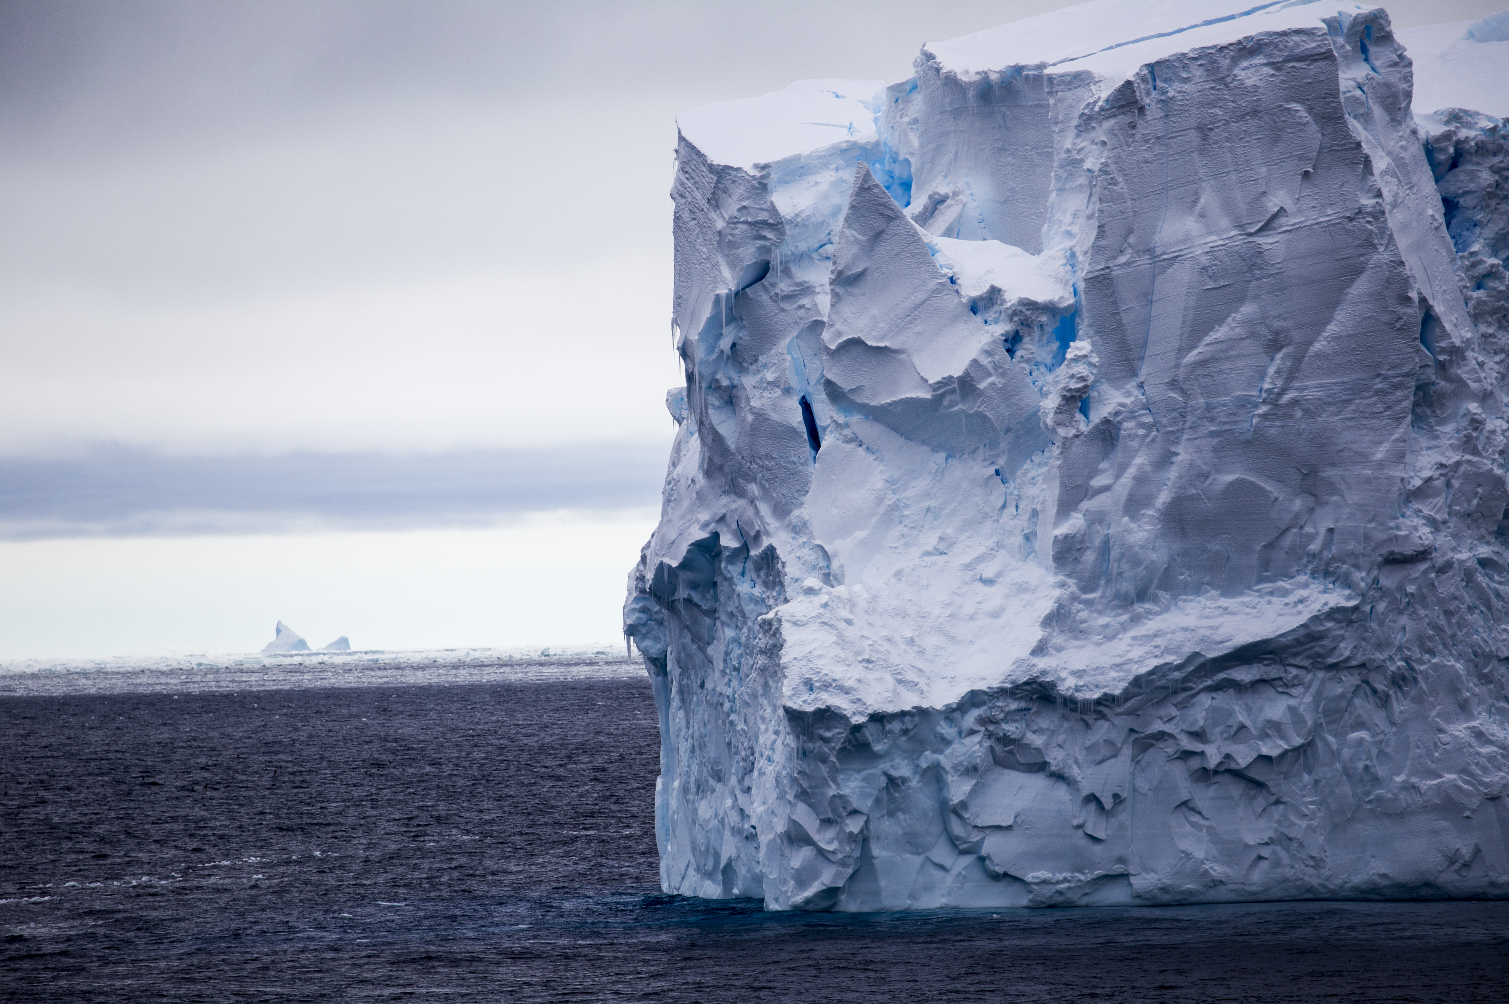 Side view of a large iceberg floating on the ocean.